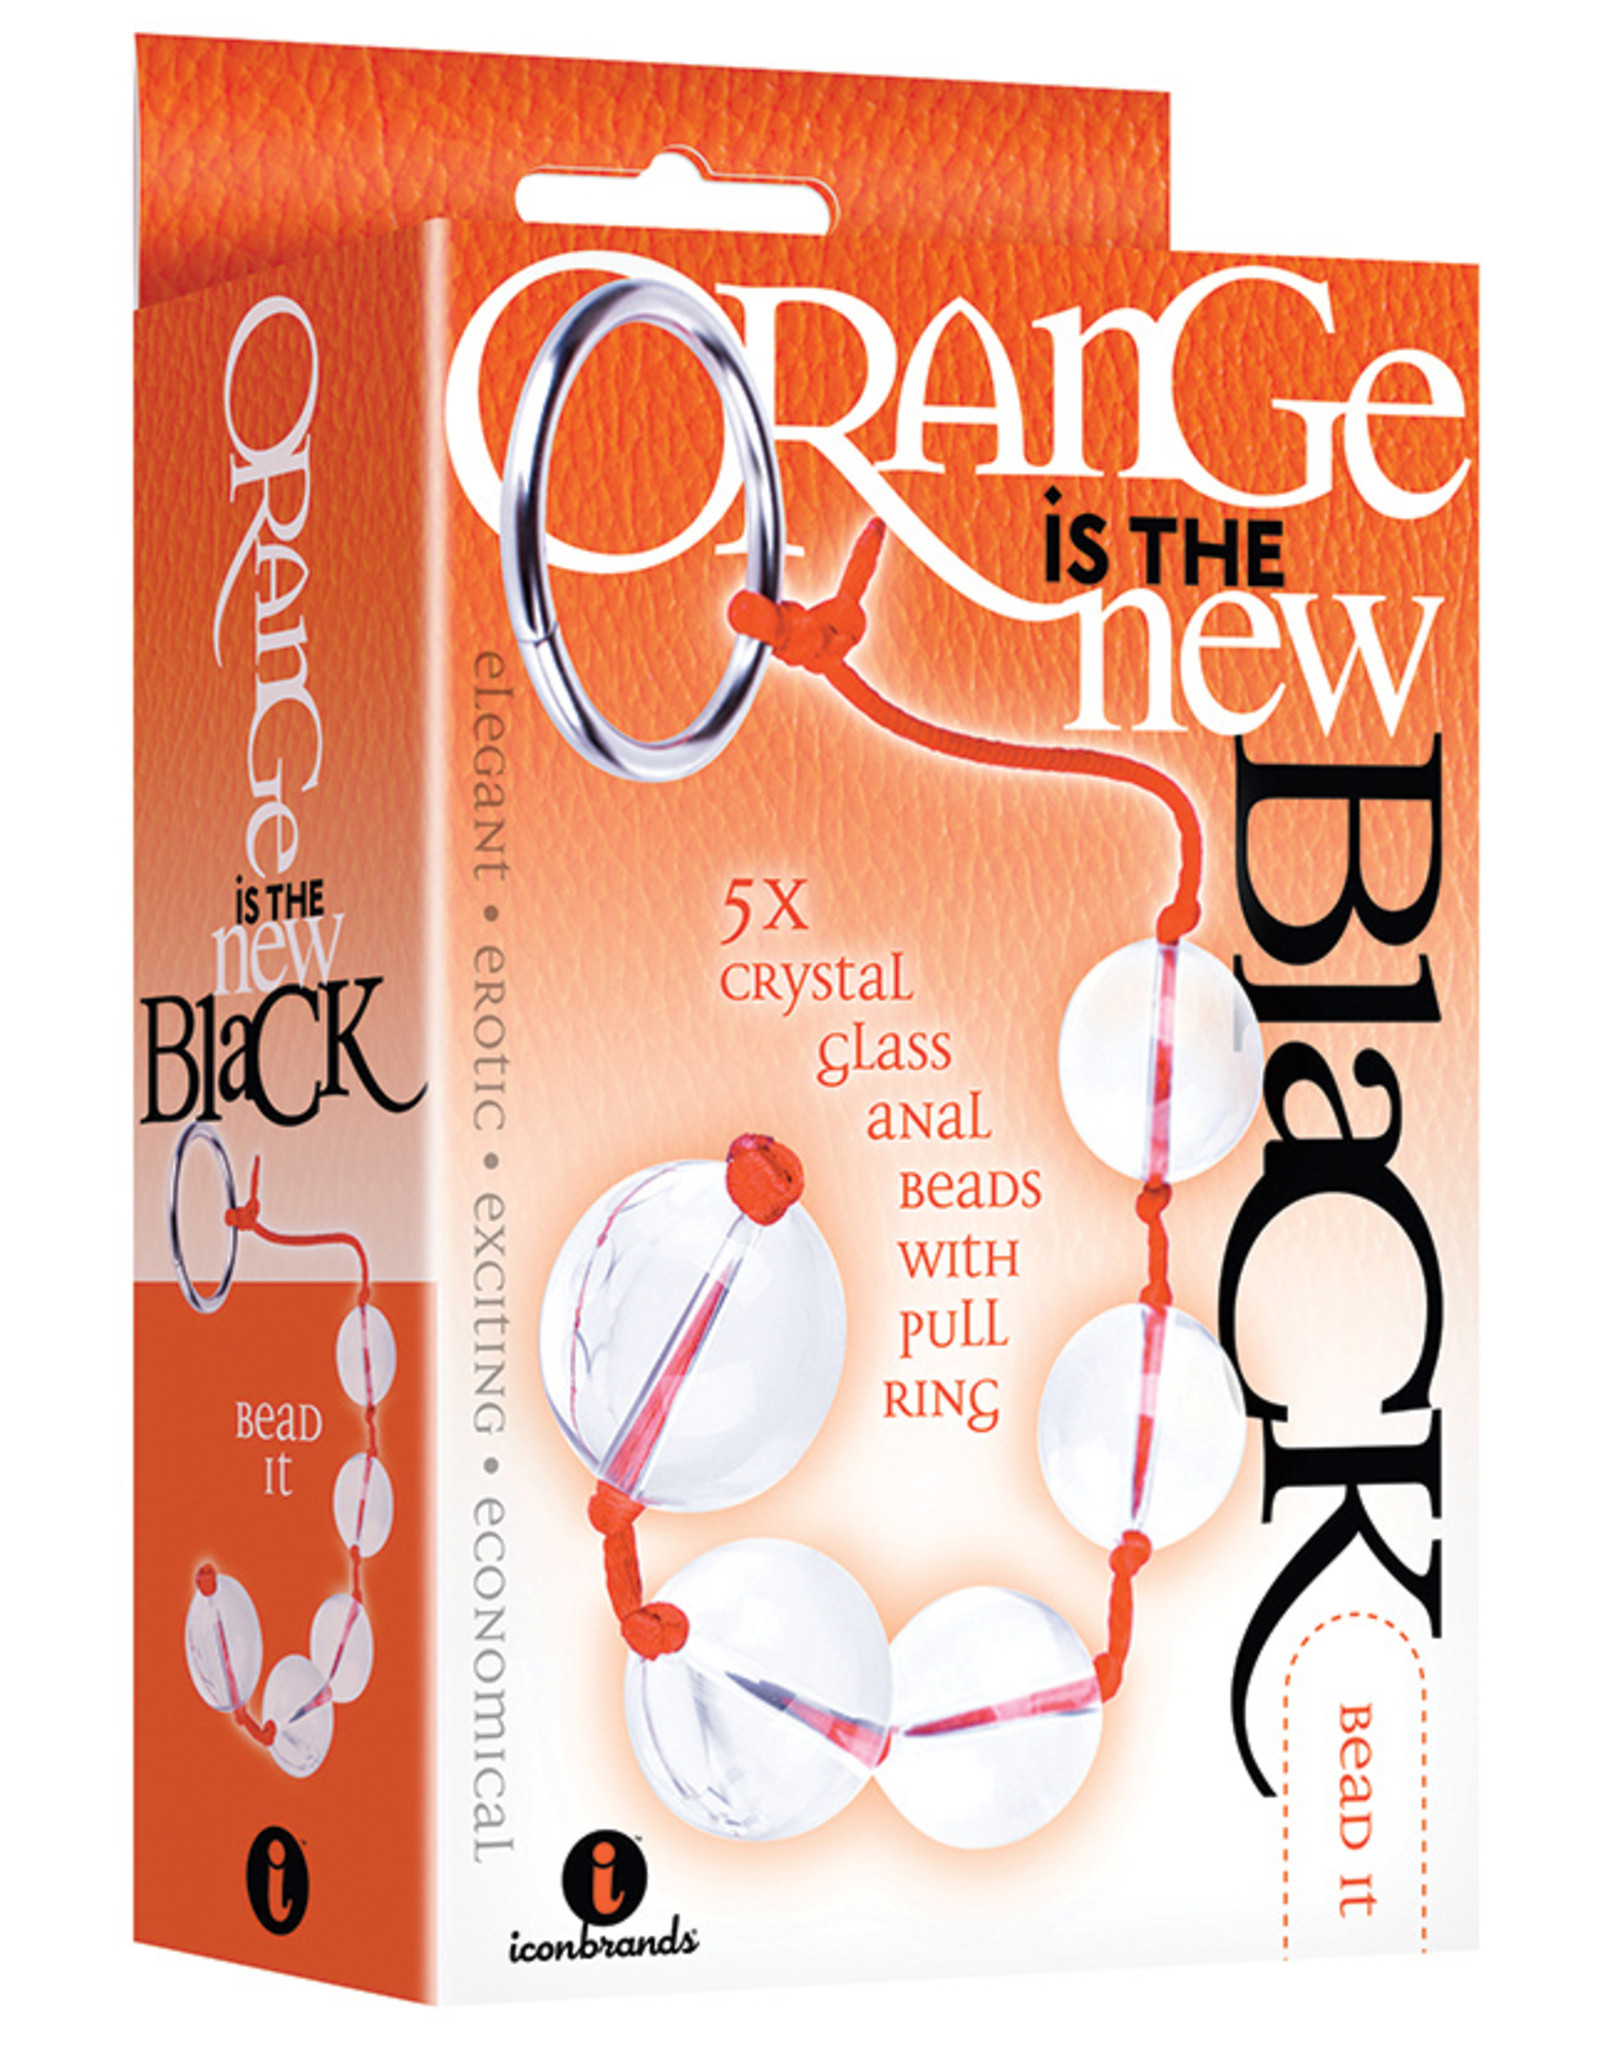 The 9'S Orange Is The New Black 5X Glass Anal Beads